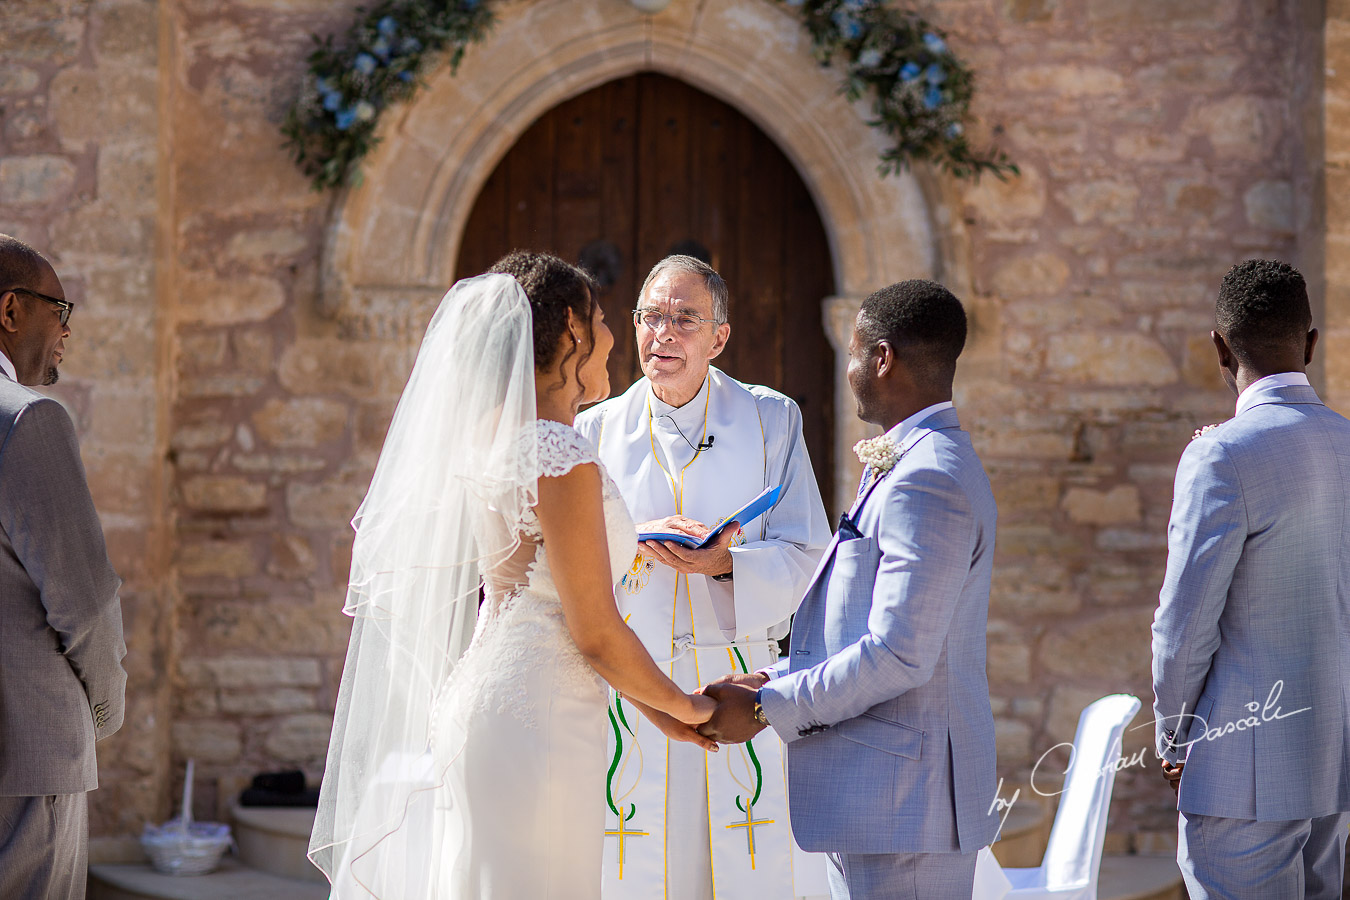 Beautiful ceremony moments captured at a wedding at Minthis Hills in Cyprus, by Cristian Dascalu.